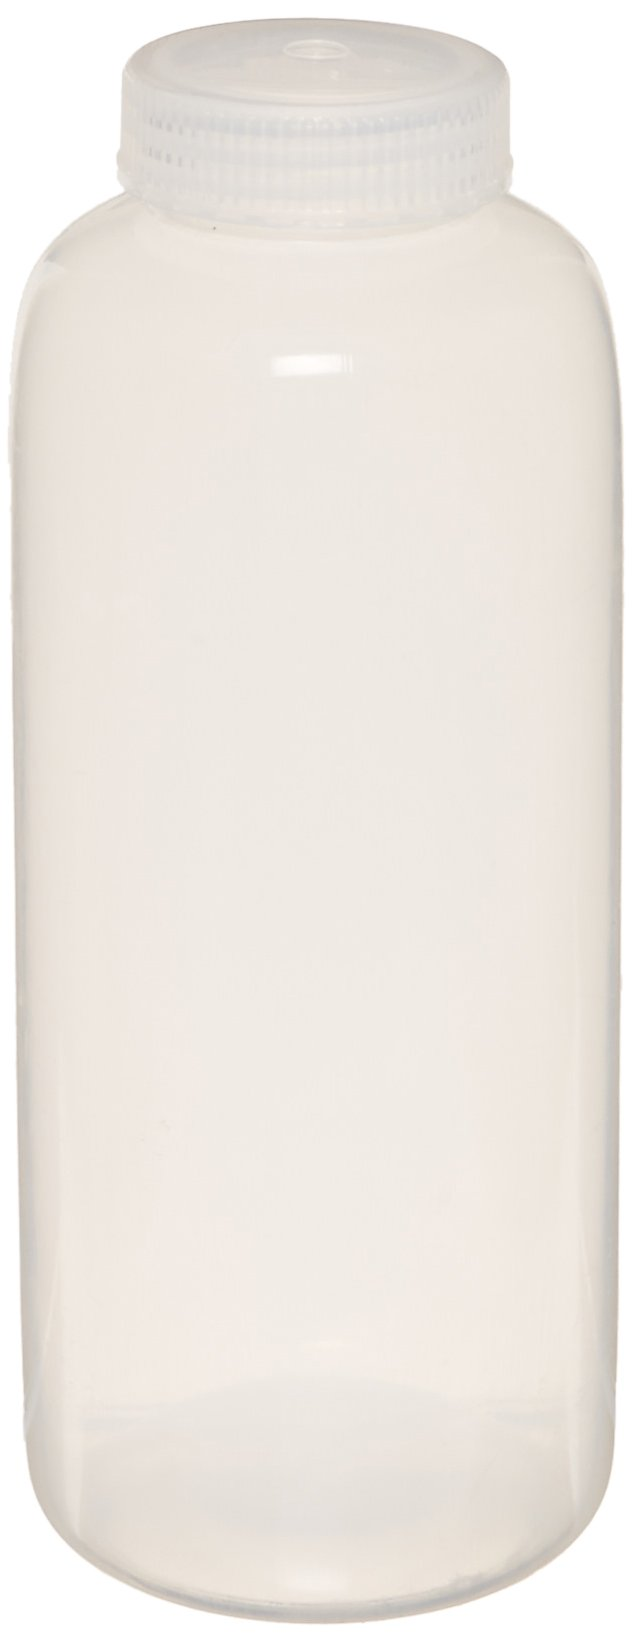 United Scientific 33310 Polypropylene Wide Mouth Reagent Bottles, 1000ml Capacity (Pack of 6)